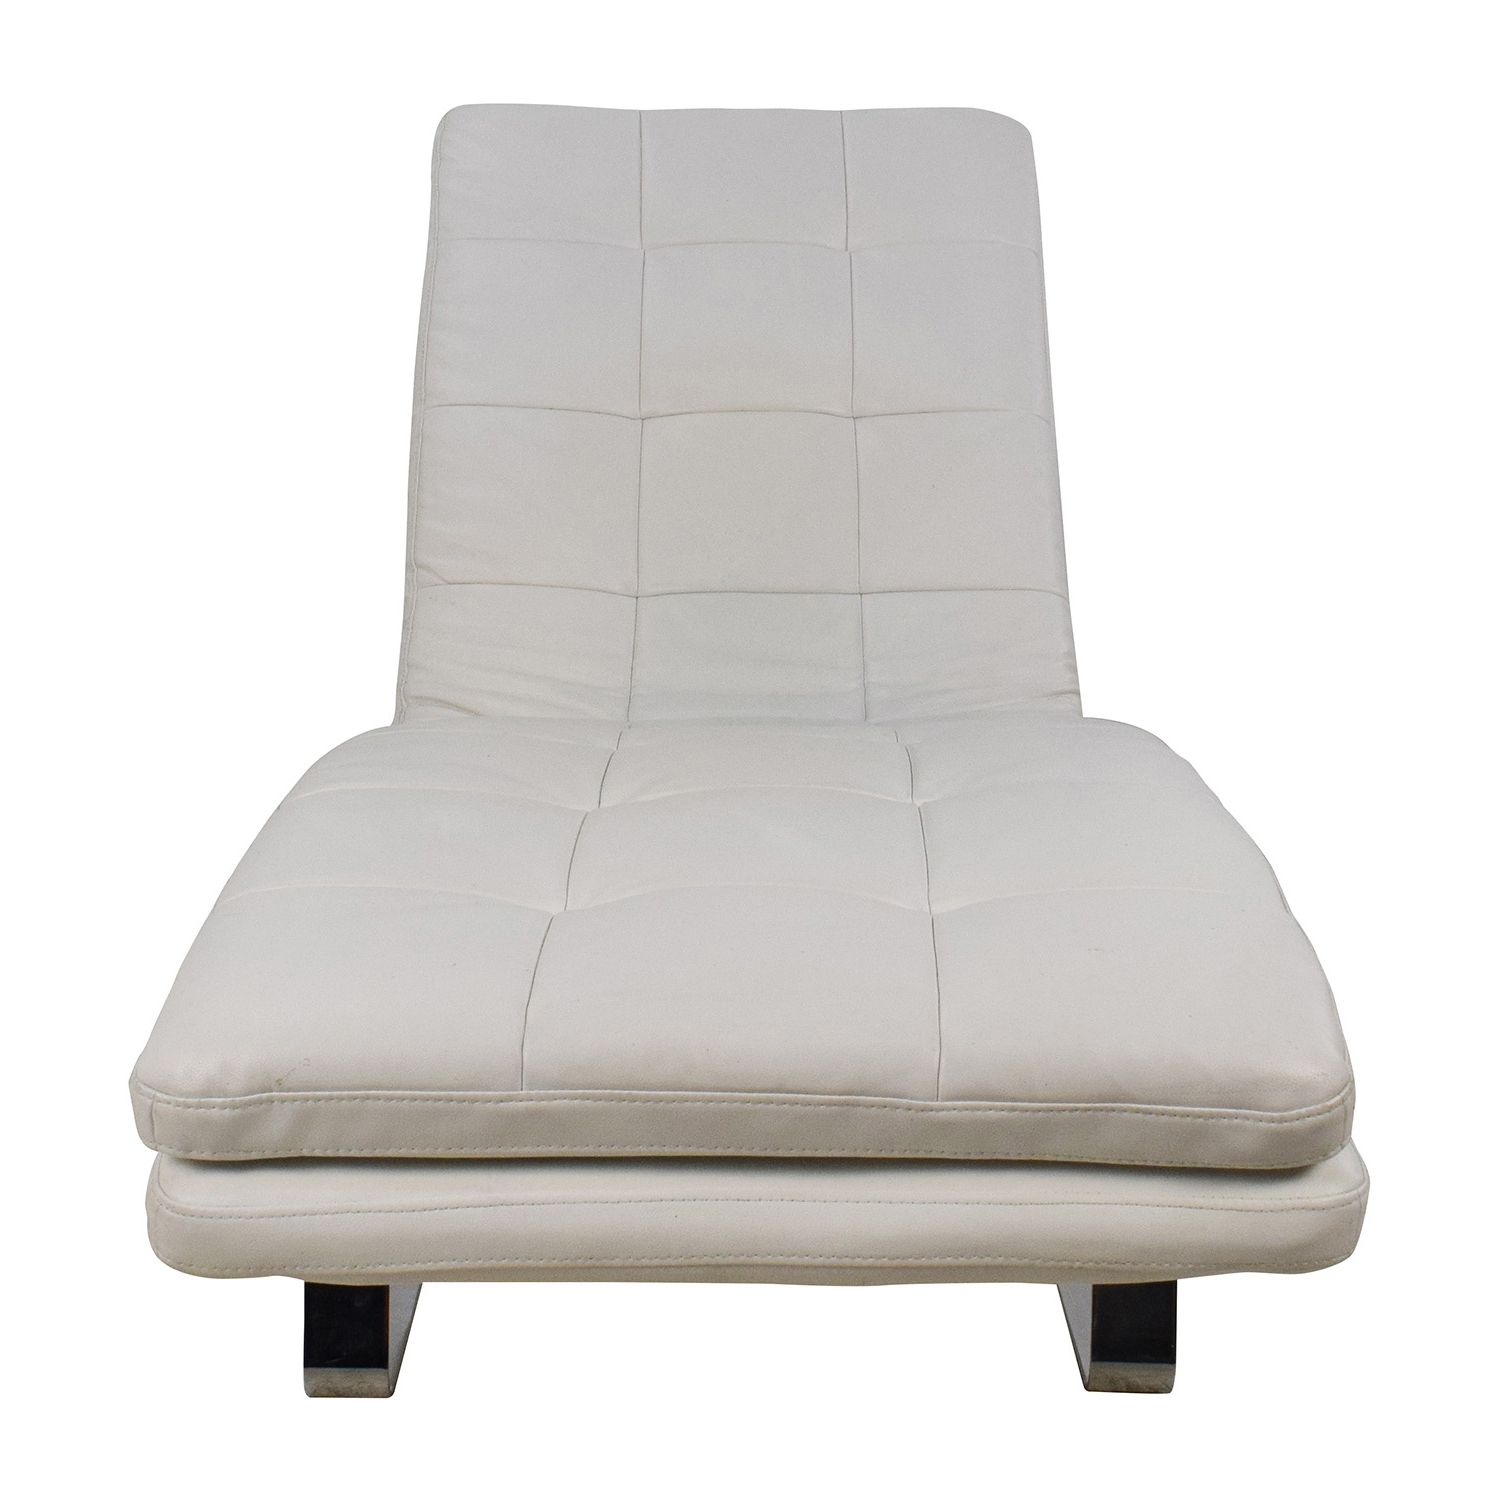 [%85% Off – Leija Designs Leija Designs Brown Mohair Chaise Lounger Inside 2018 White Chaises|White Chaises Pertaining To Preferred 85% Off – Leija Designs Leija Designs Brown Mohair Chaise Lounger|Widely Used White Chaises With Regard To 85% Off – Leija Designs Leija Designs Brown Mohair Chaise Lounger|Most Recently Released 85% Off – Leija Designs Leija Designs Brown Mohair Chaise Lounger Within White Chaises%] (View 12 of 15)